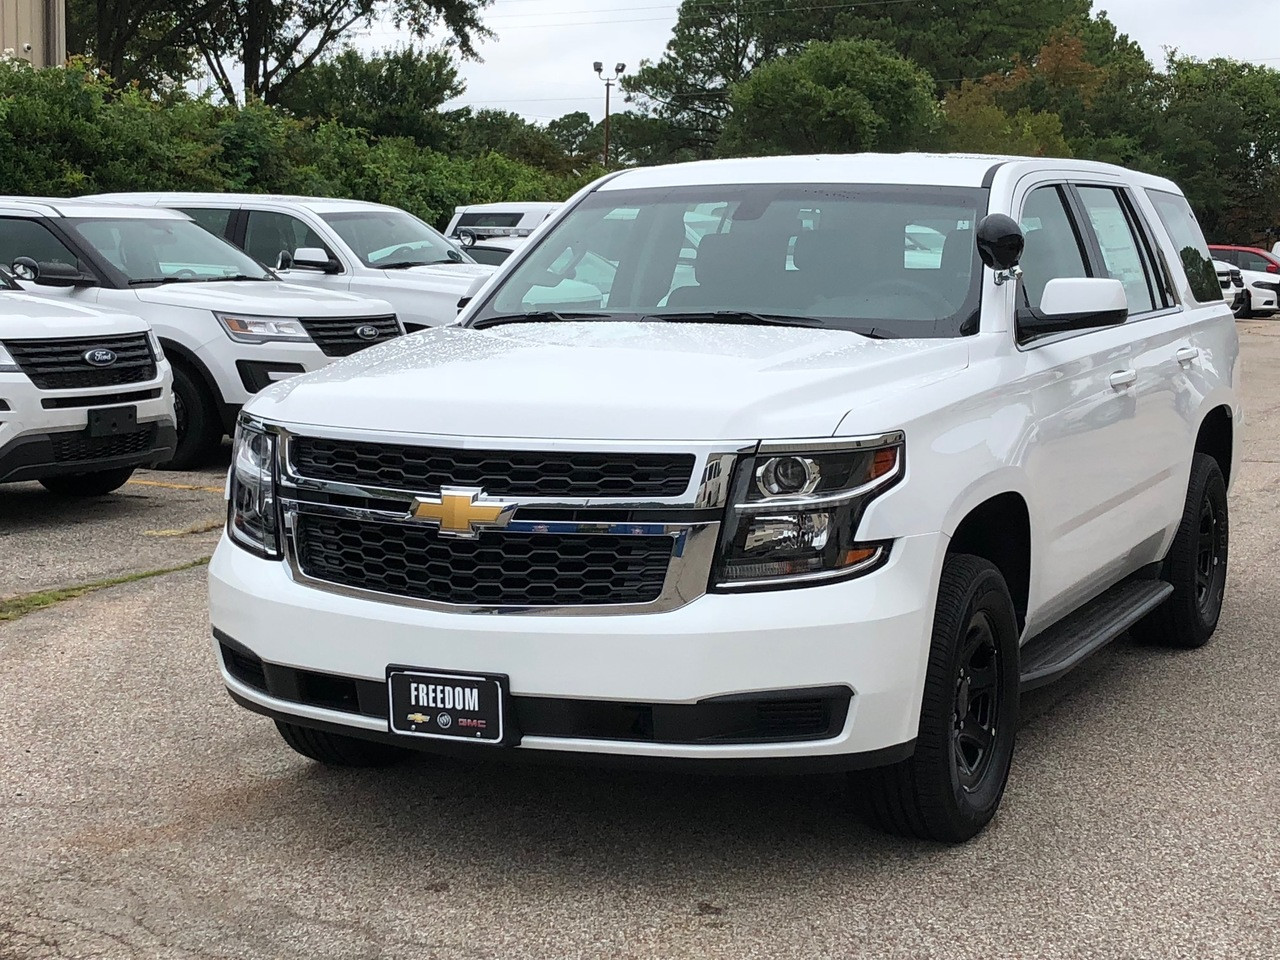 New 2019 Chevy Tahoe Police Package V8 2WD ready to be built as a Marked Patrol Package, choose any color LED Lights, + Delivery